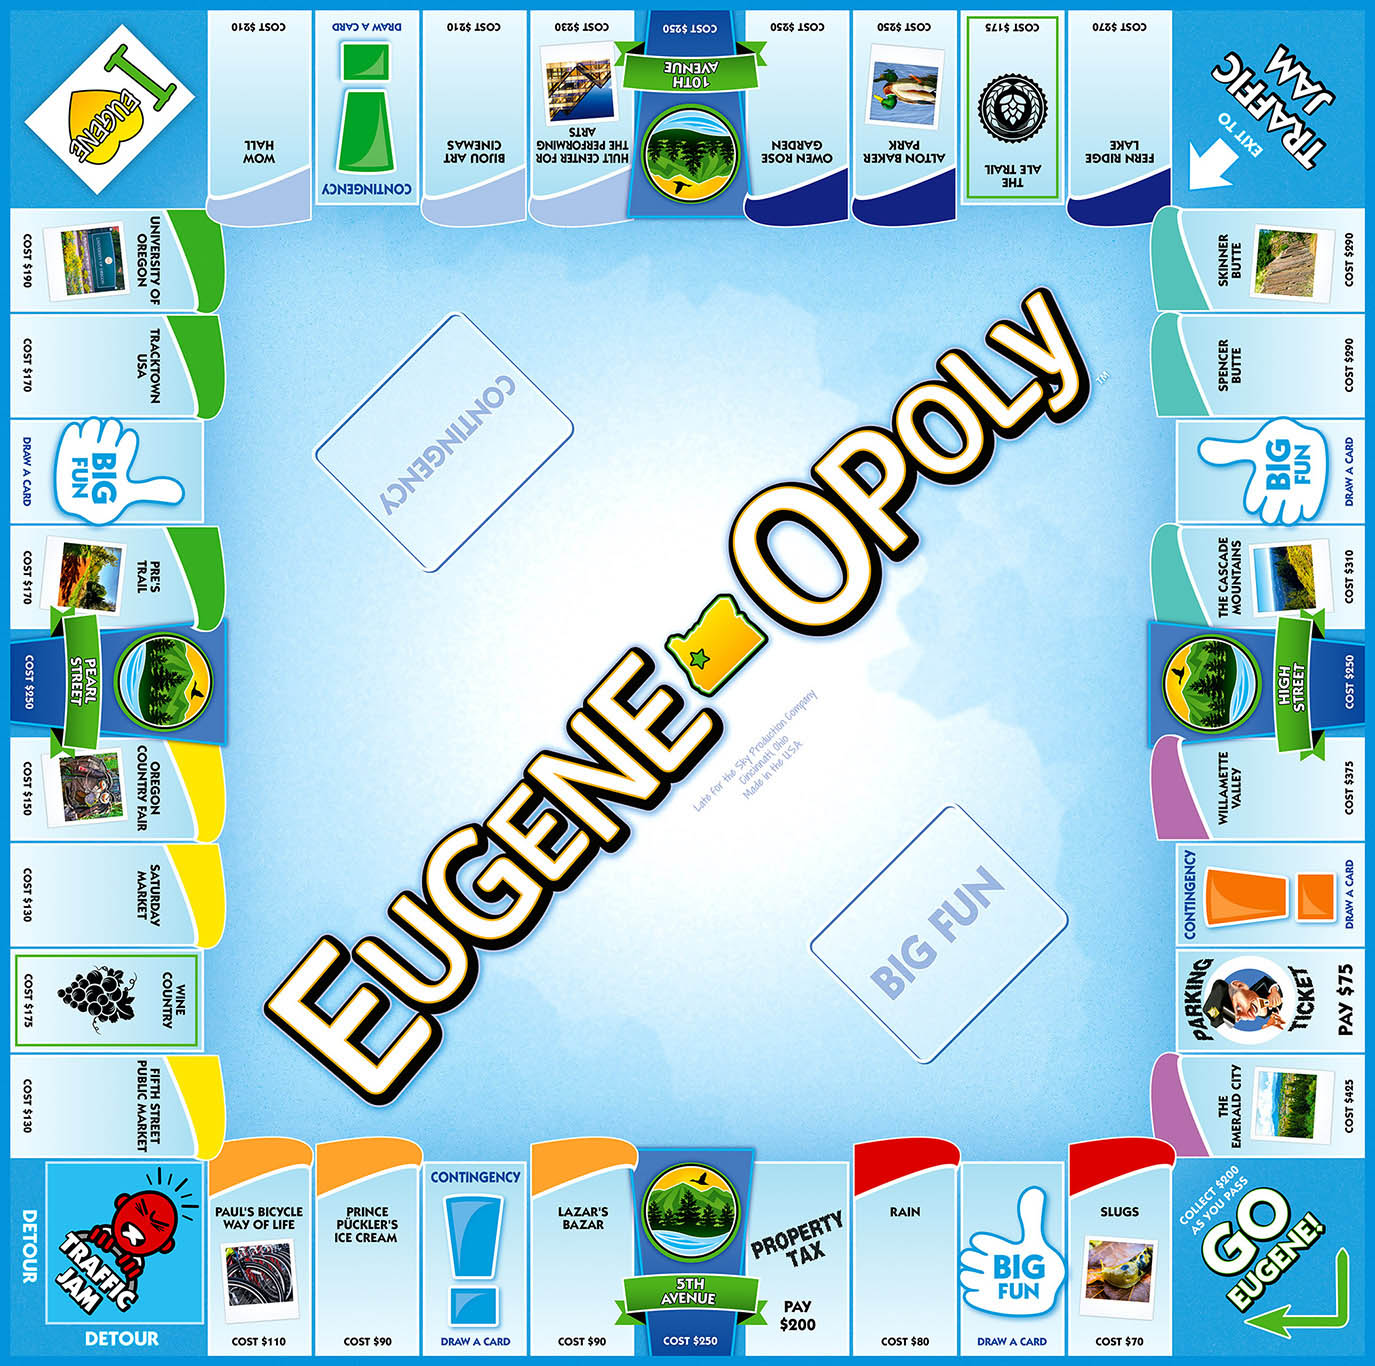 EUGENE-OPOLY Board Game